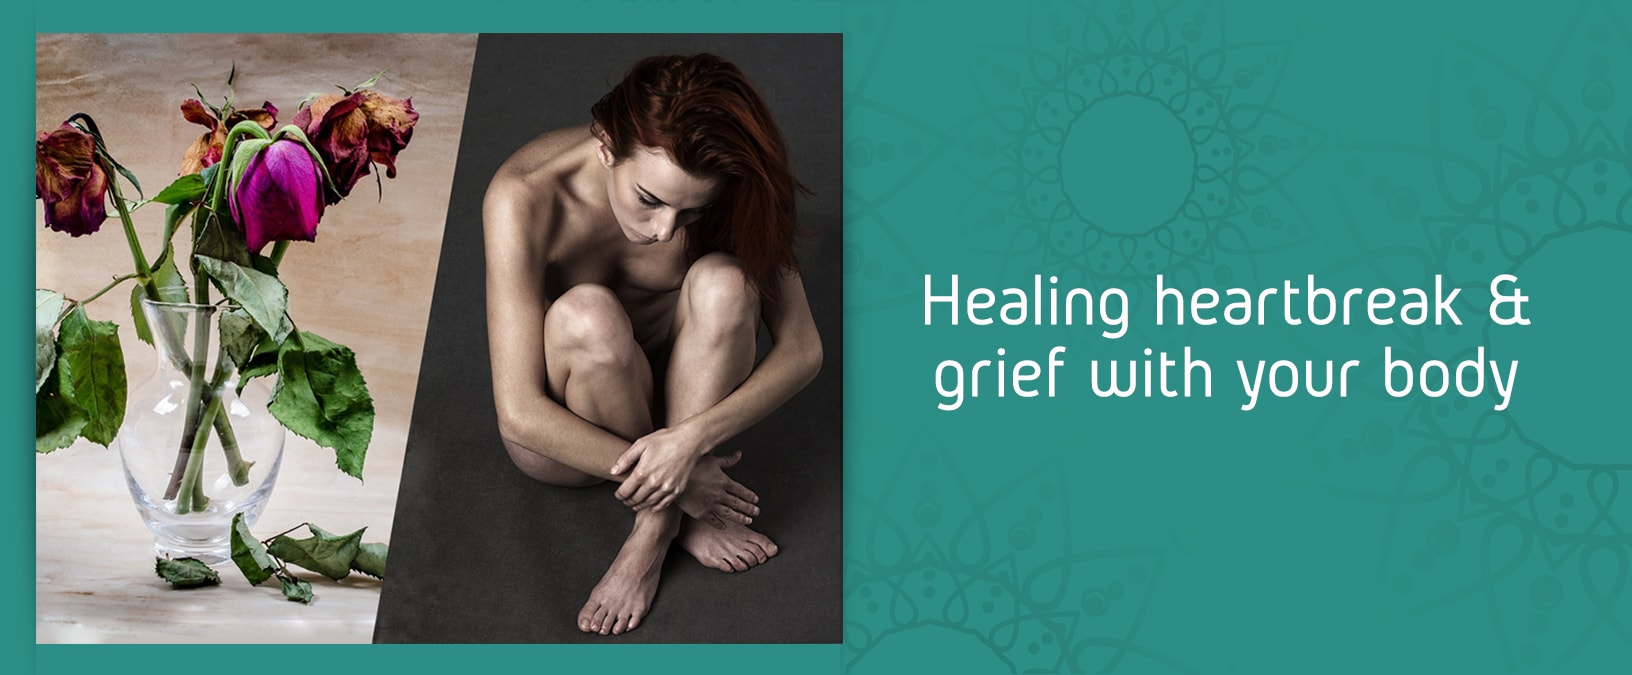 Healing Heartbreak and grief wuth your body